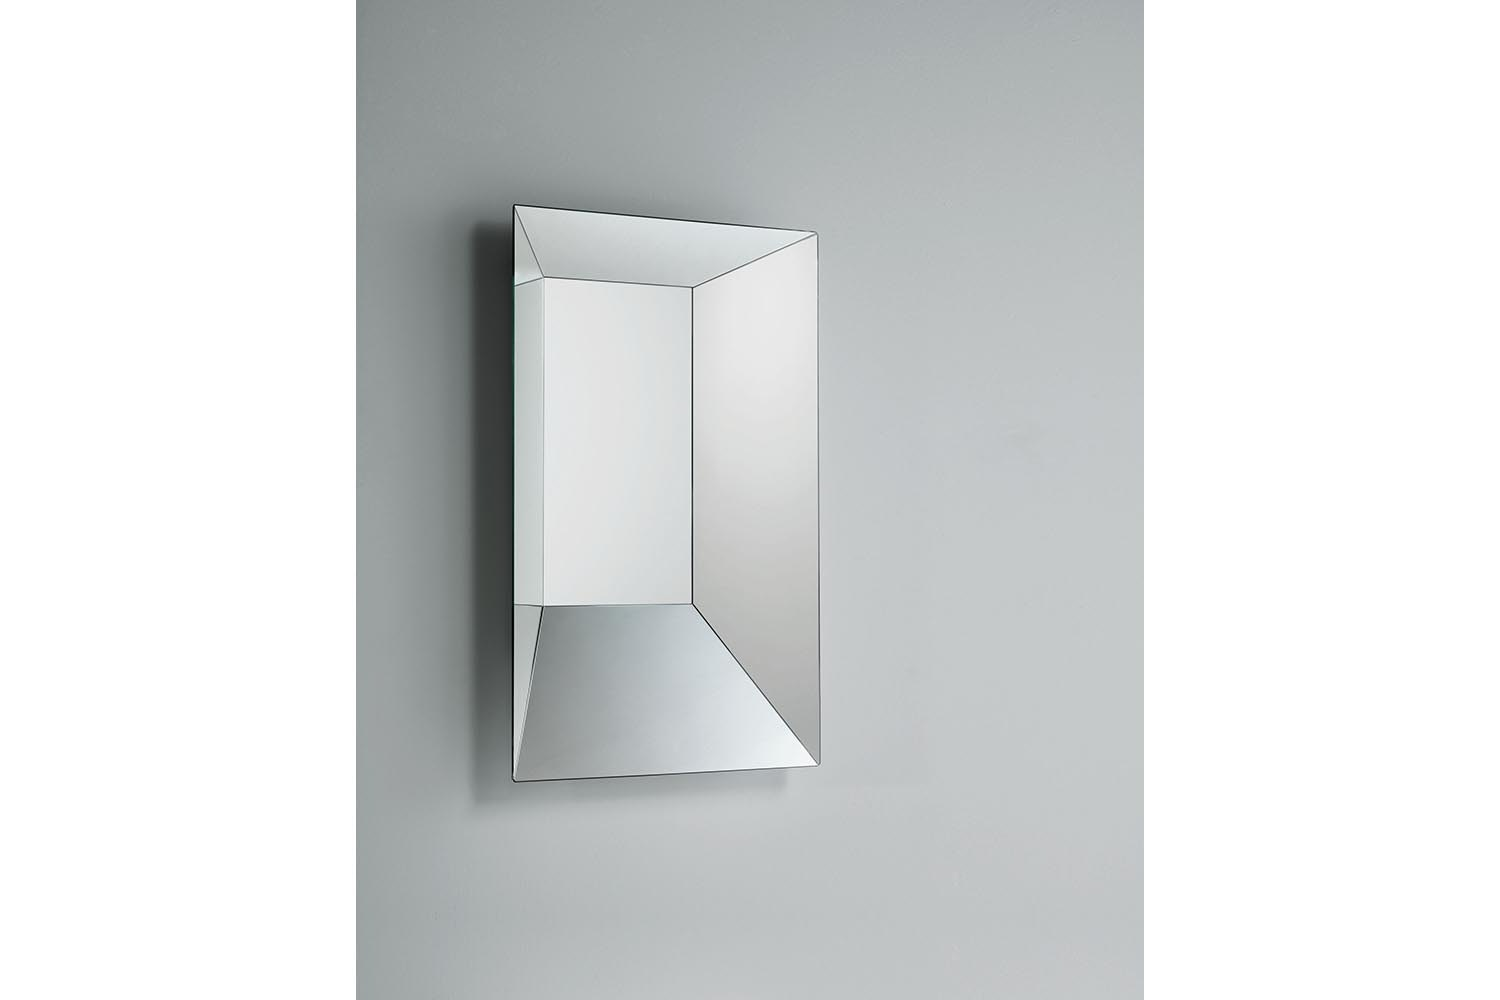 Leon Battista Hanging Mirror by Laudani & Romanelli for Glas Italia